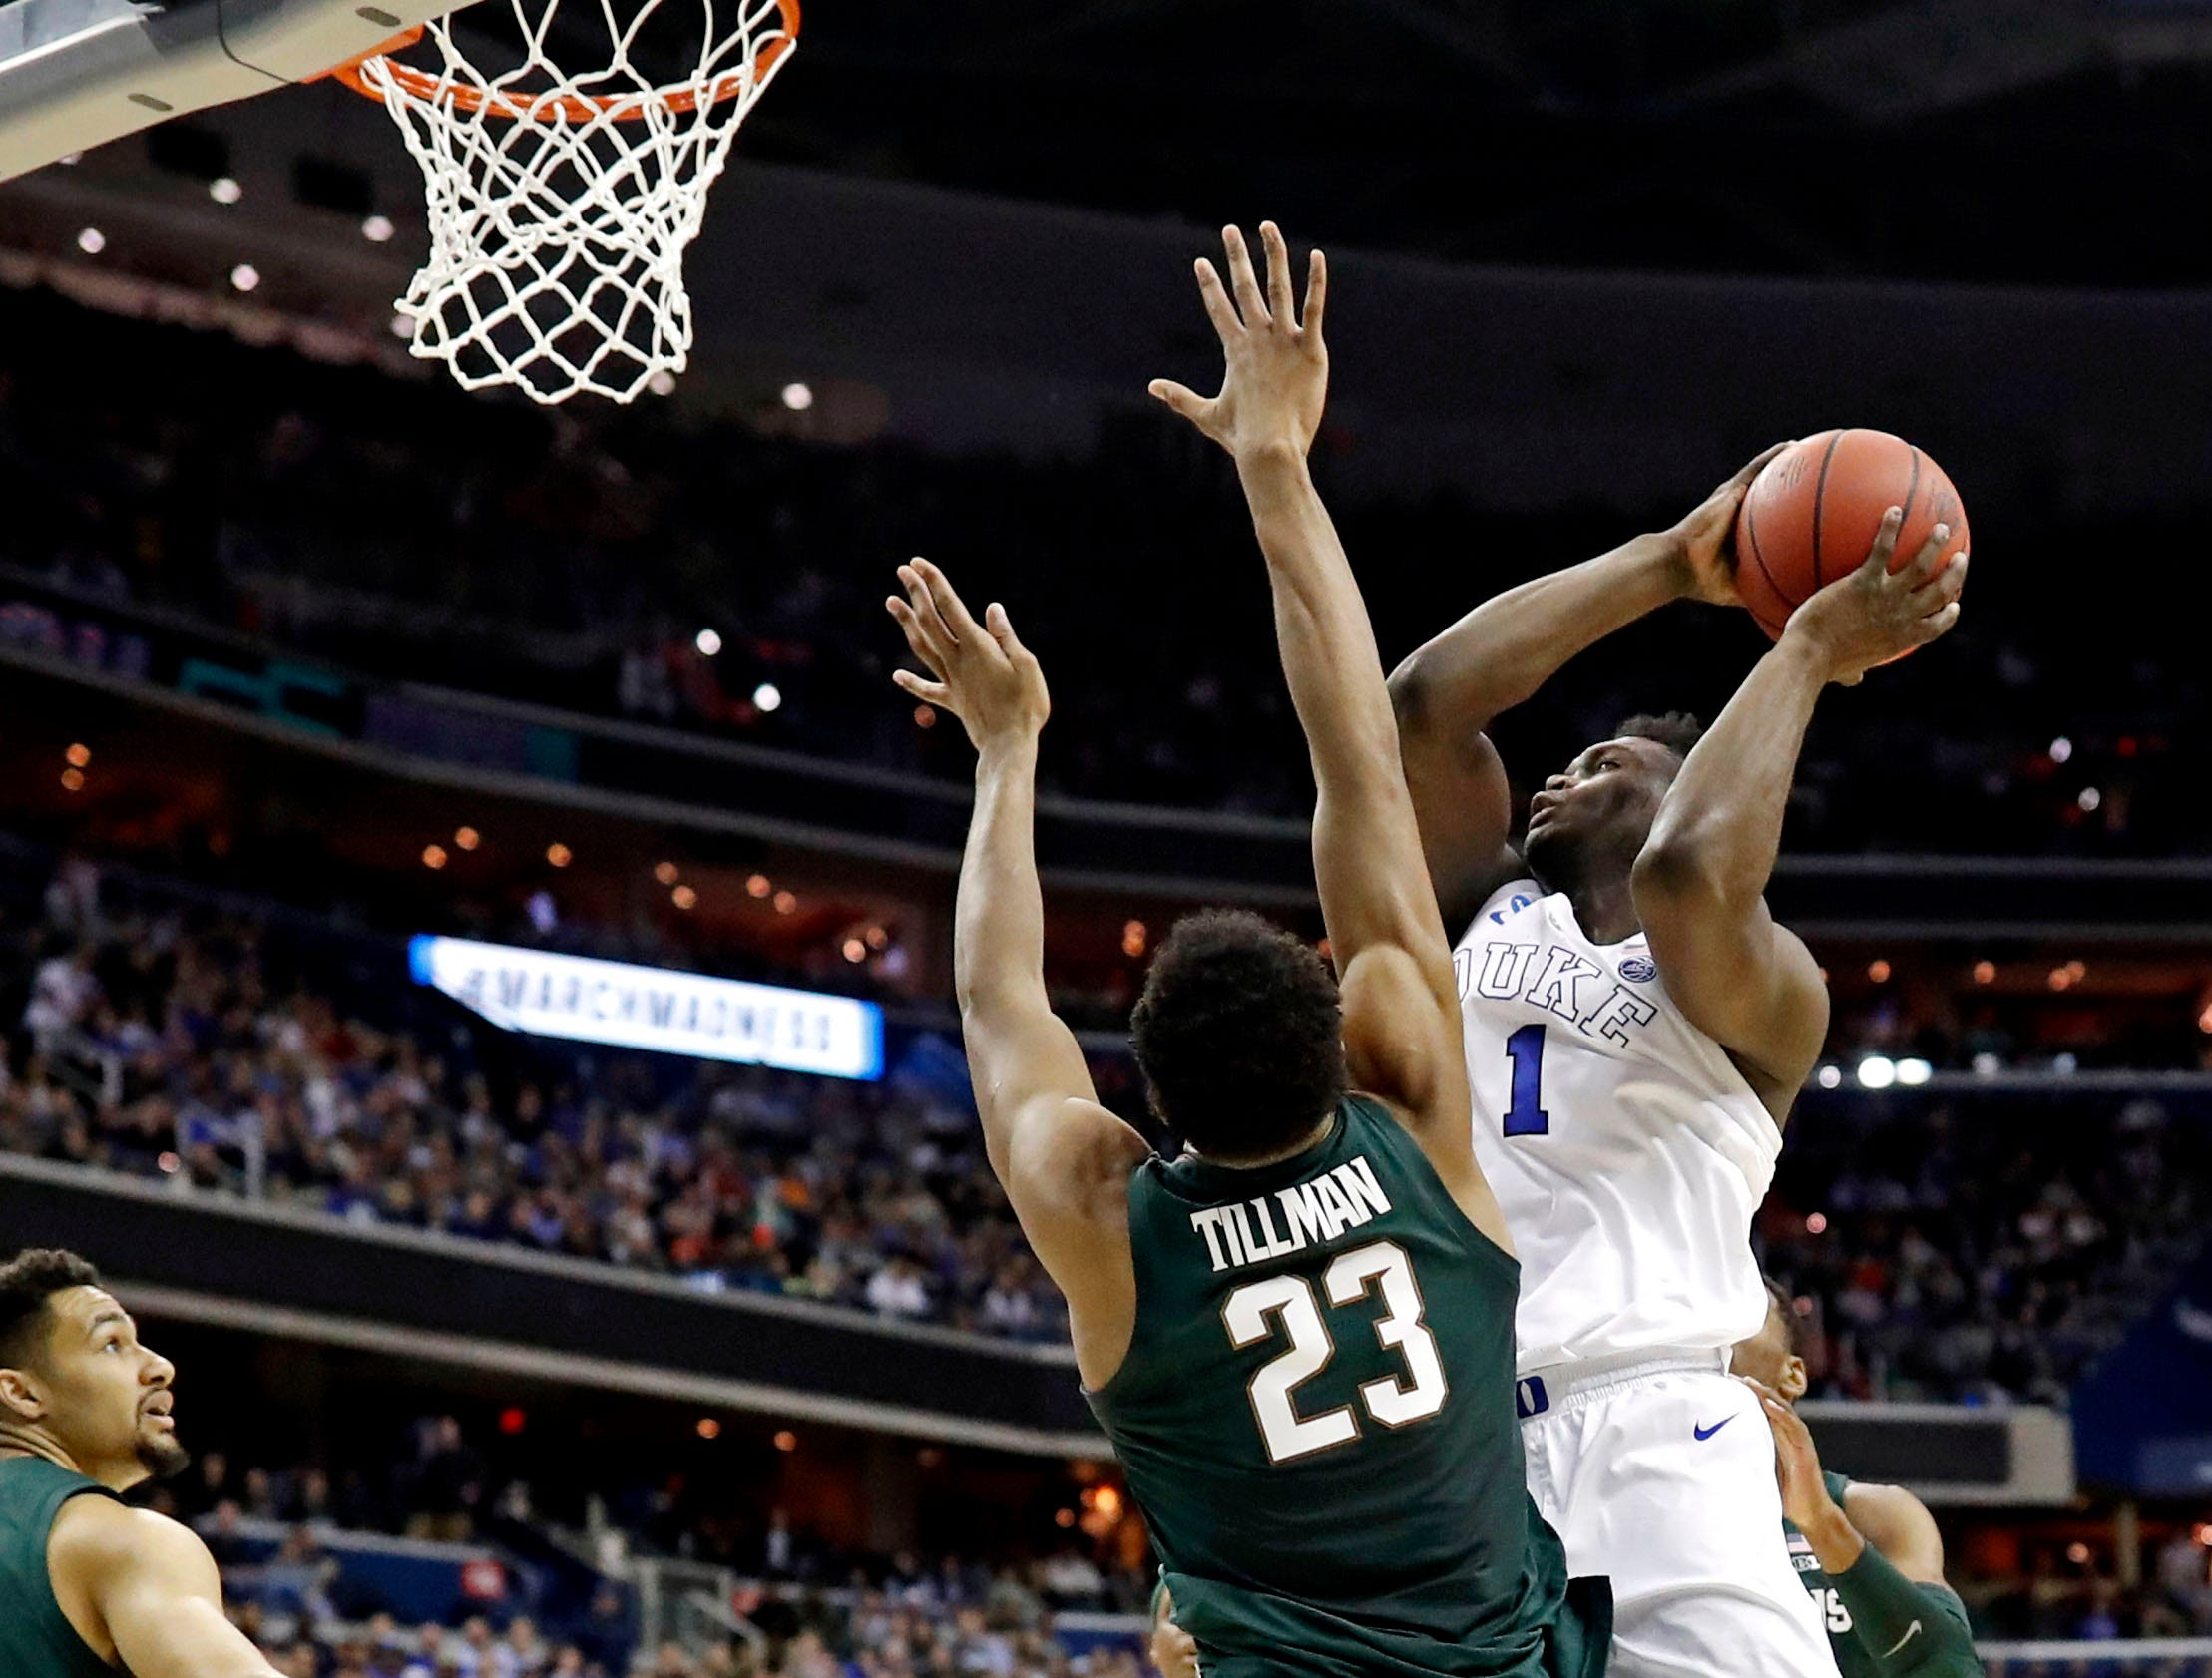 Mar 31, 2019; Washington, DC, USA; Duke Blue Devils forward Zion Williamson (1) shoots the ball against Michigan State Spartans forward Xavier Tillman (23) during the first half in the championship game of the east regional of the 2019 NCAA Tournament at Capital One Arena. Mandatory Credit: Geoff Burke-USA TODAY Sports